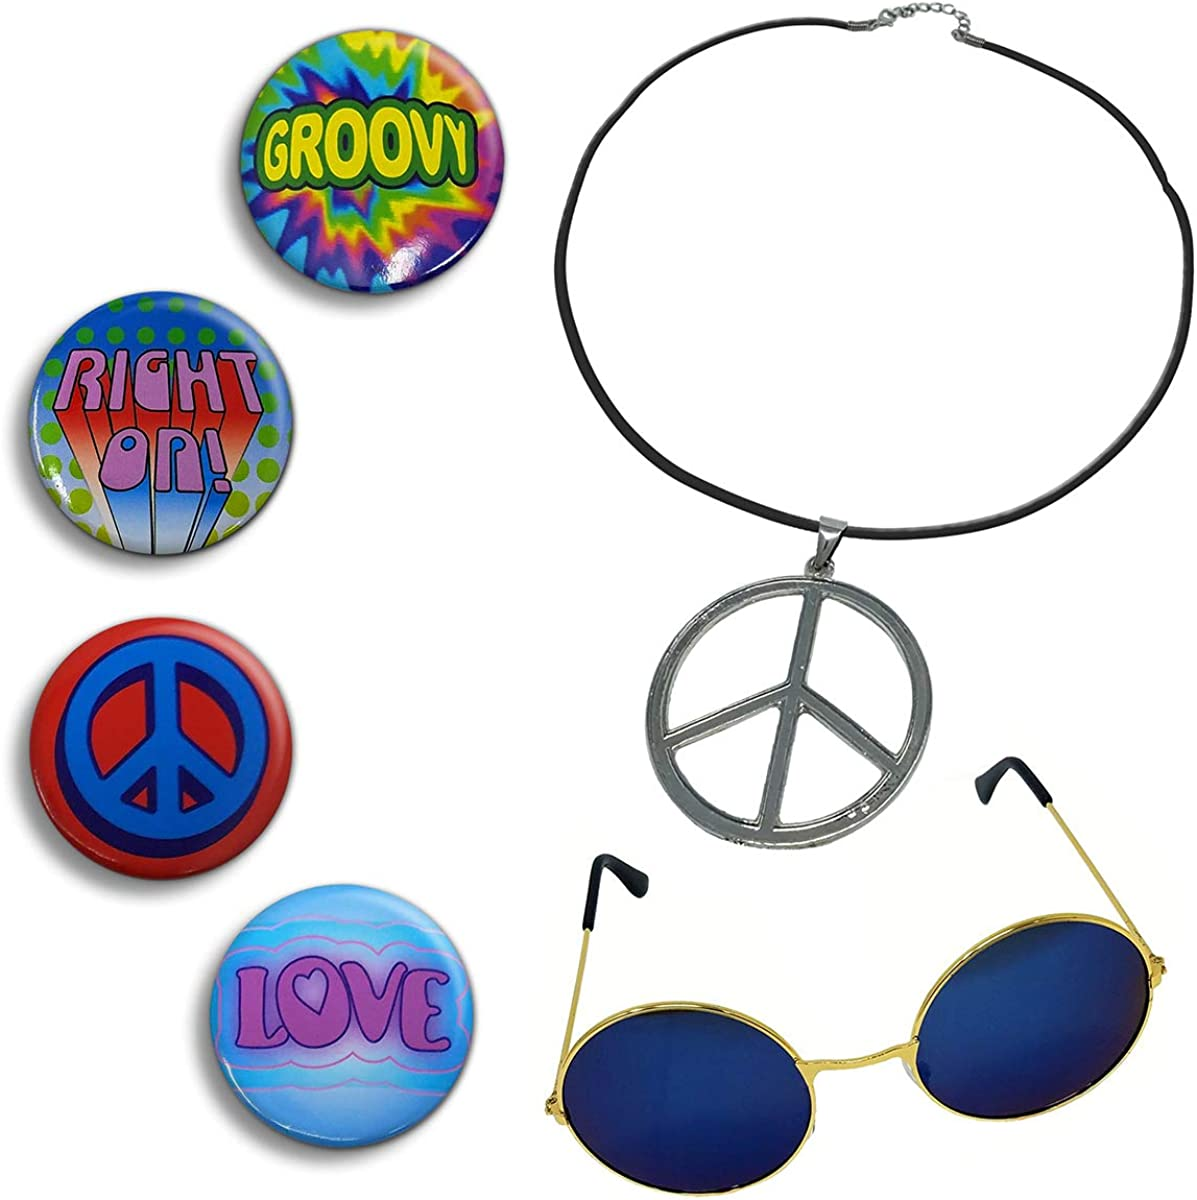 60s , 70s Hippie Clothes for Men NorNovelties Hippie Costume Accessories - Peace Sign Necklace 4 Buttons Groovy Glasses 6 Piece Set $9.95 AT vintagedancer.com